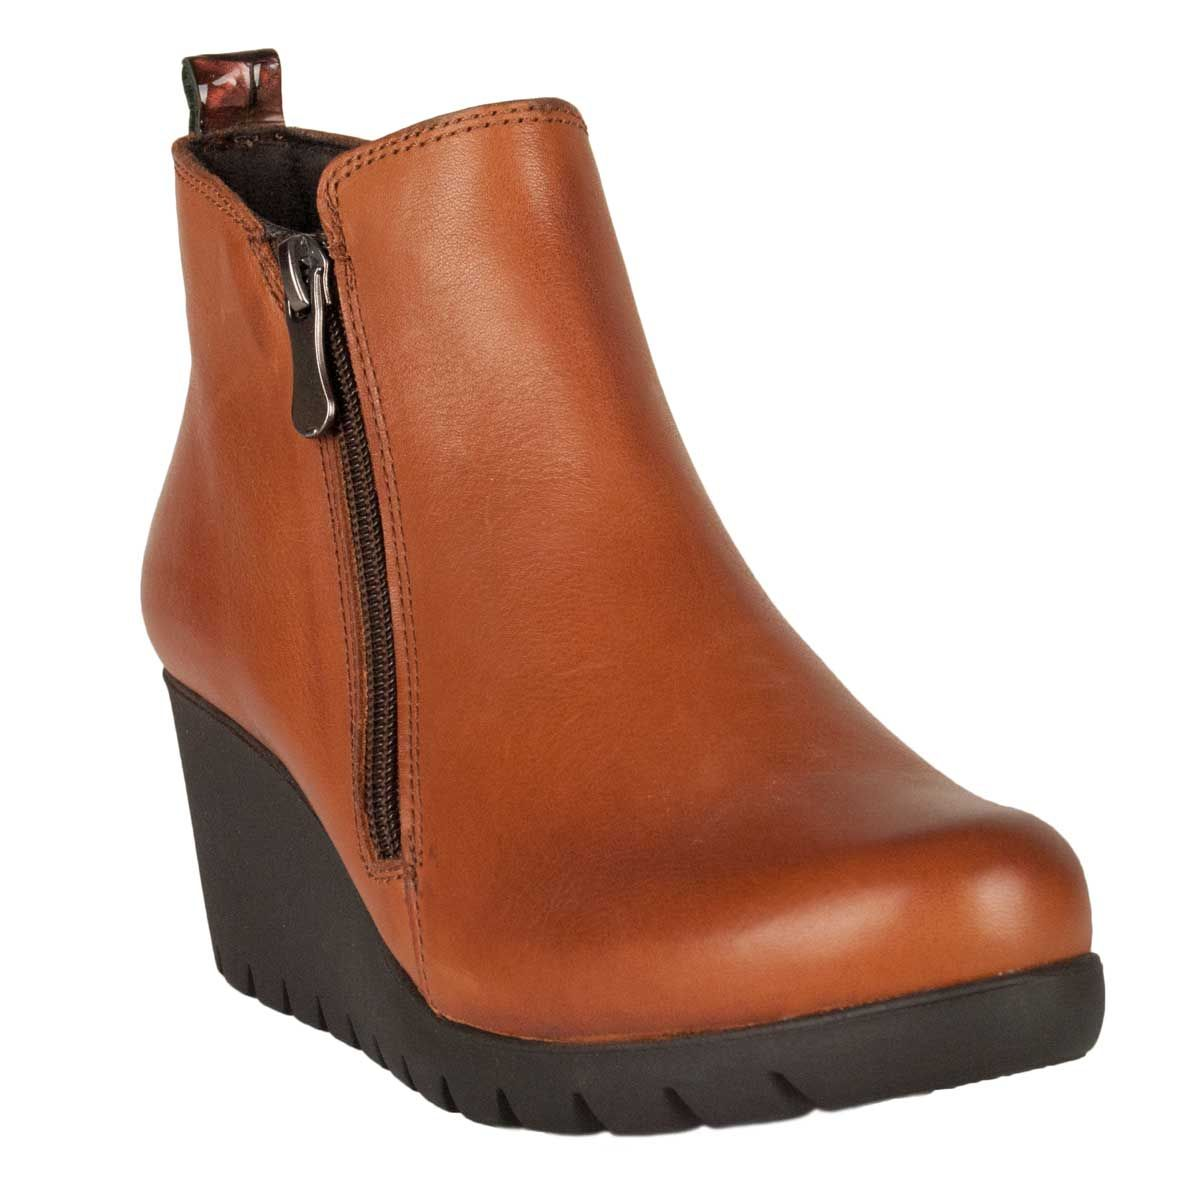 Montevita Wedge Ankle Boot in Brown